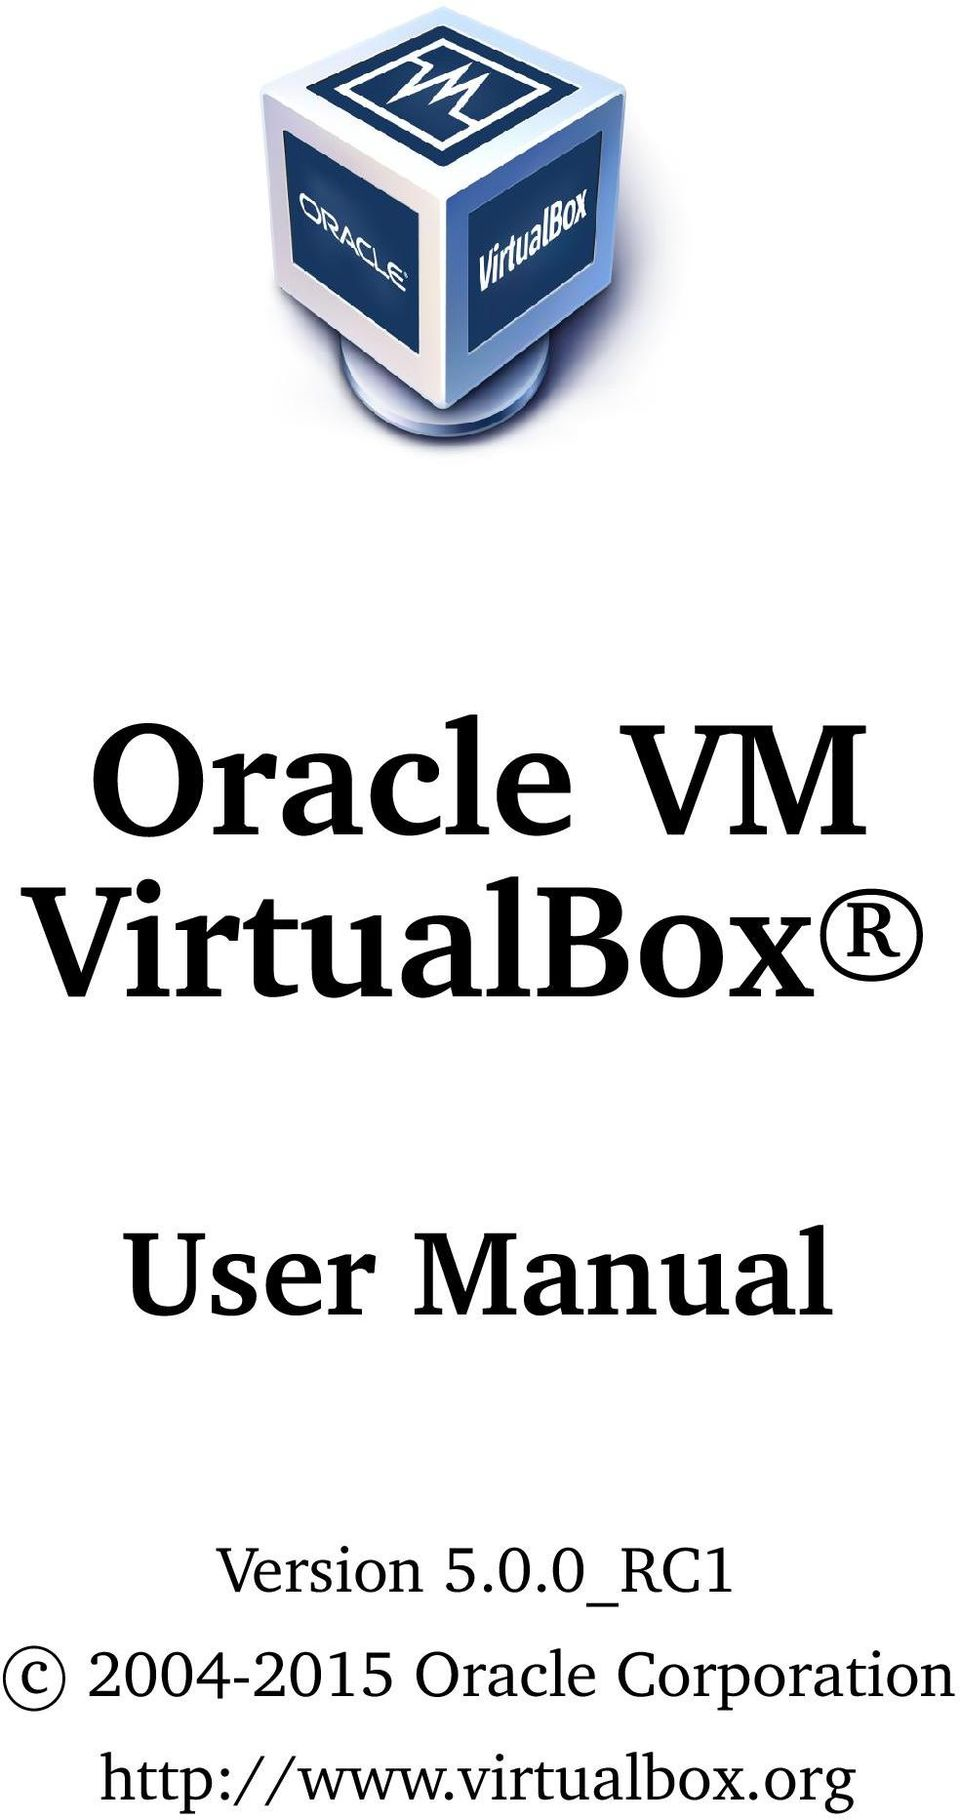 0_RC1 c 2004-2015 Oracle